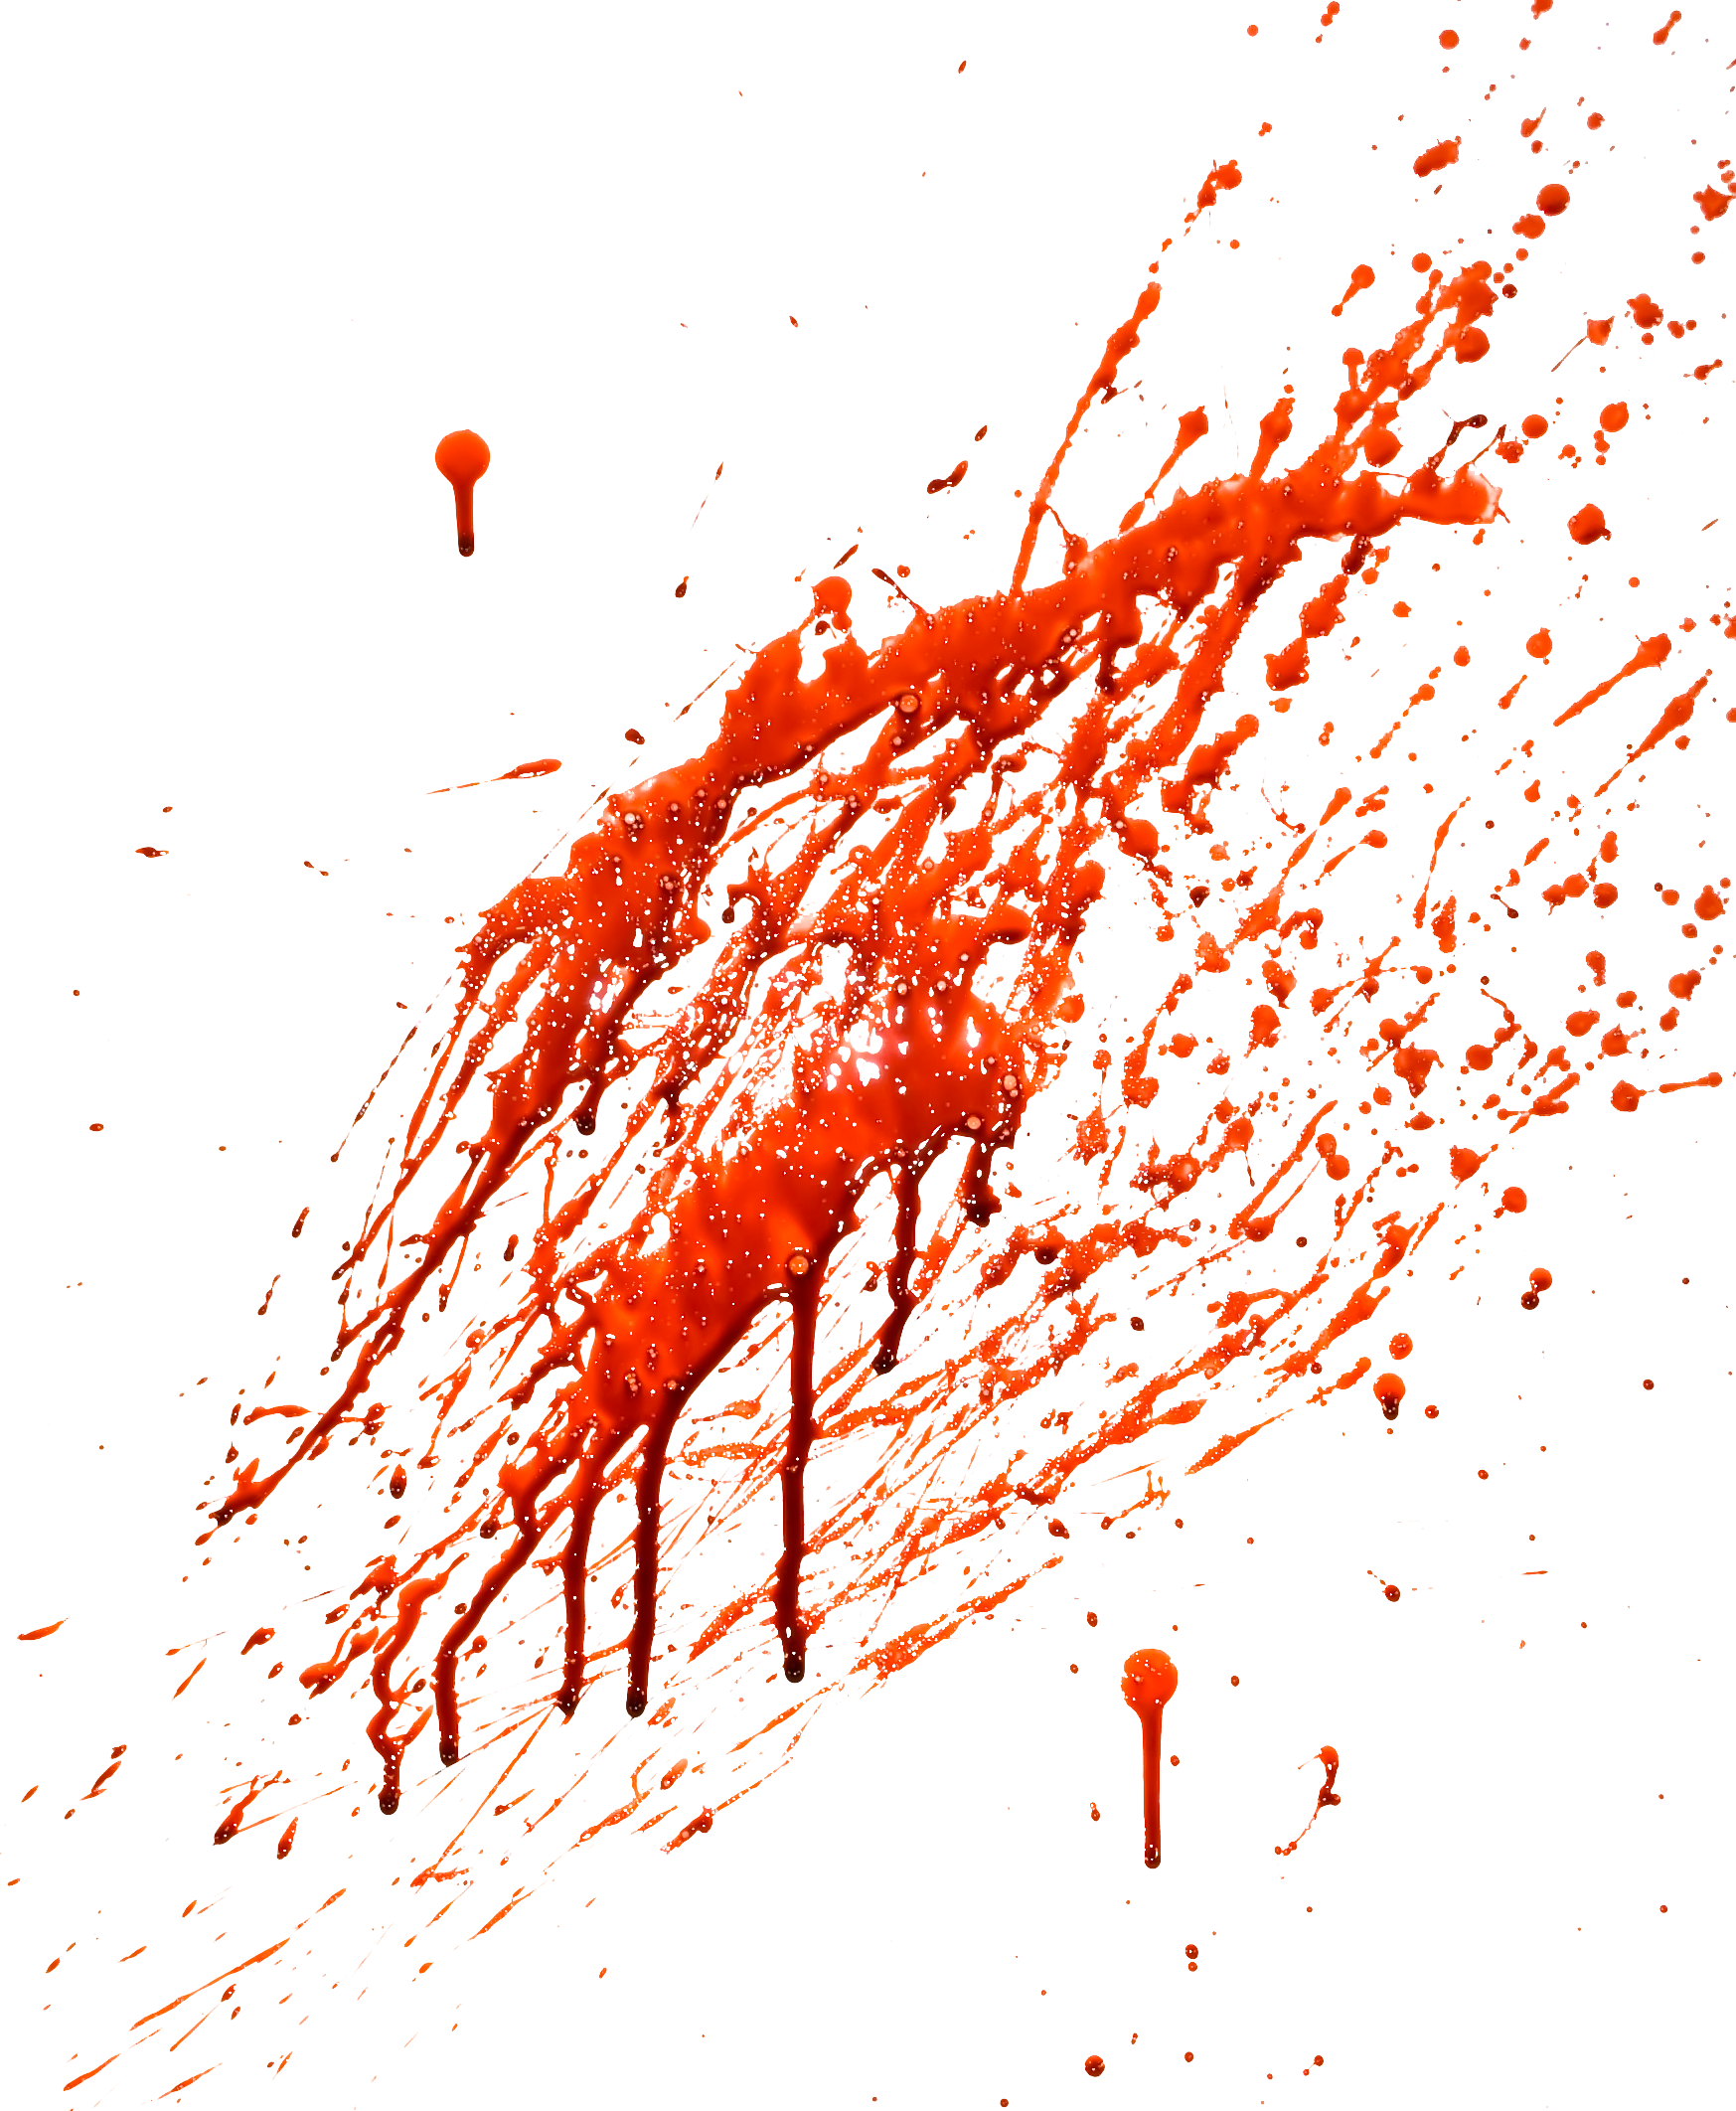 Png blood splatter. Images free download splashes